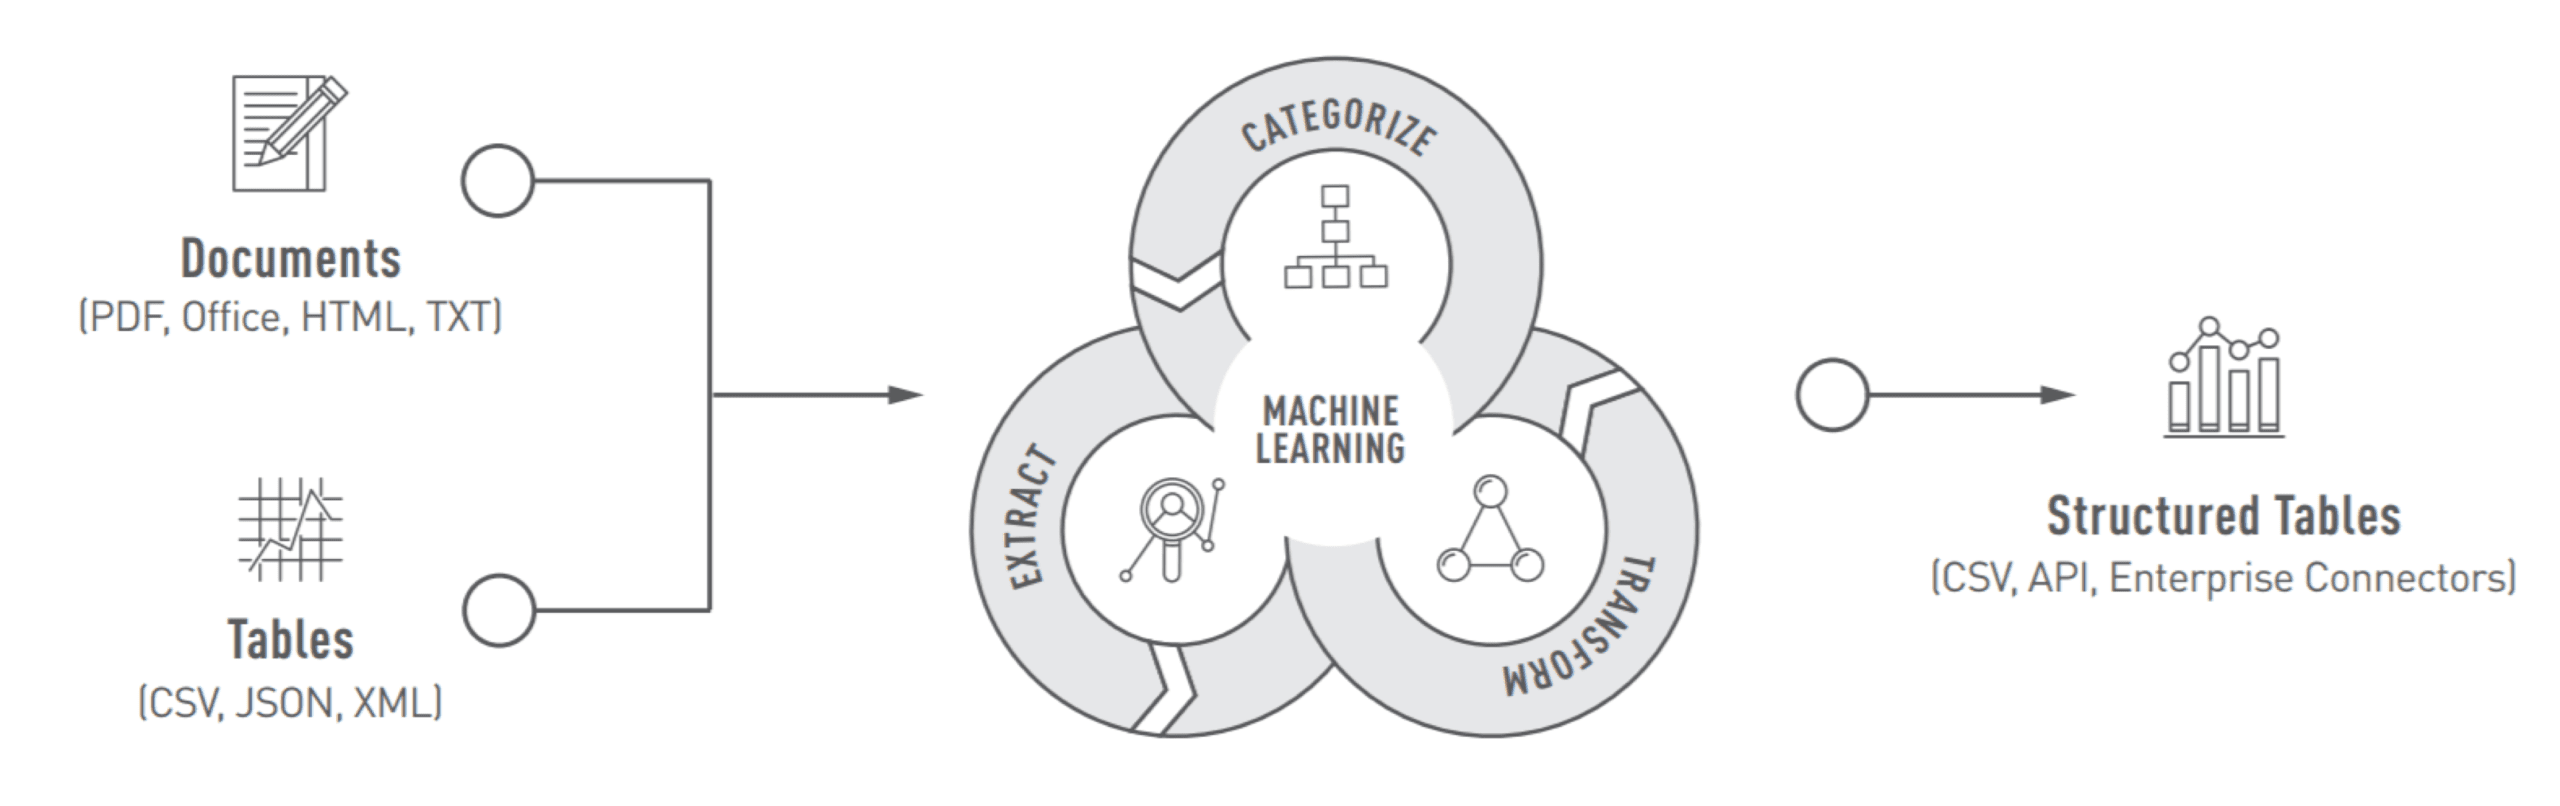 Creating Resilient Operations Through Machine Learning